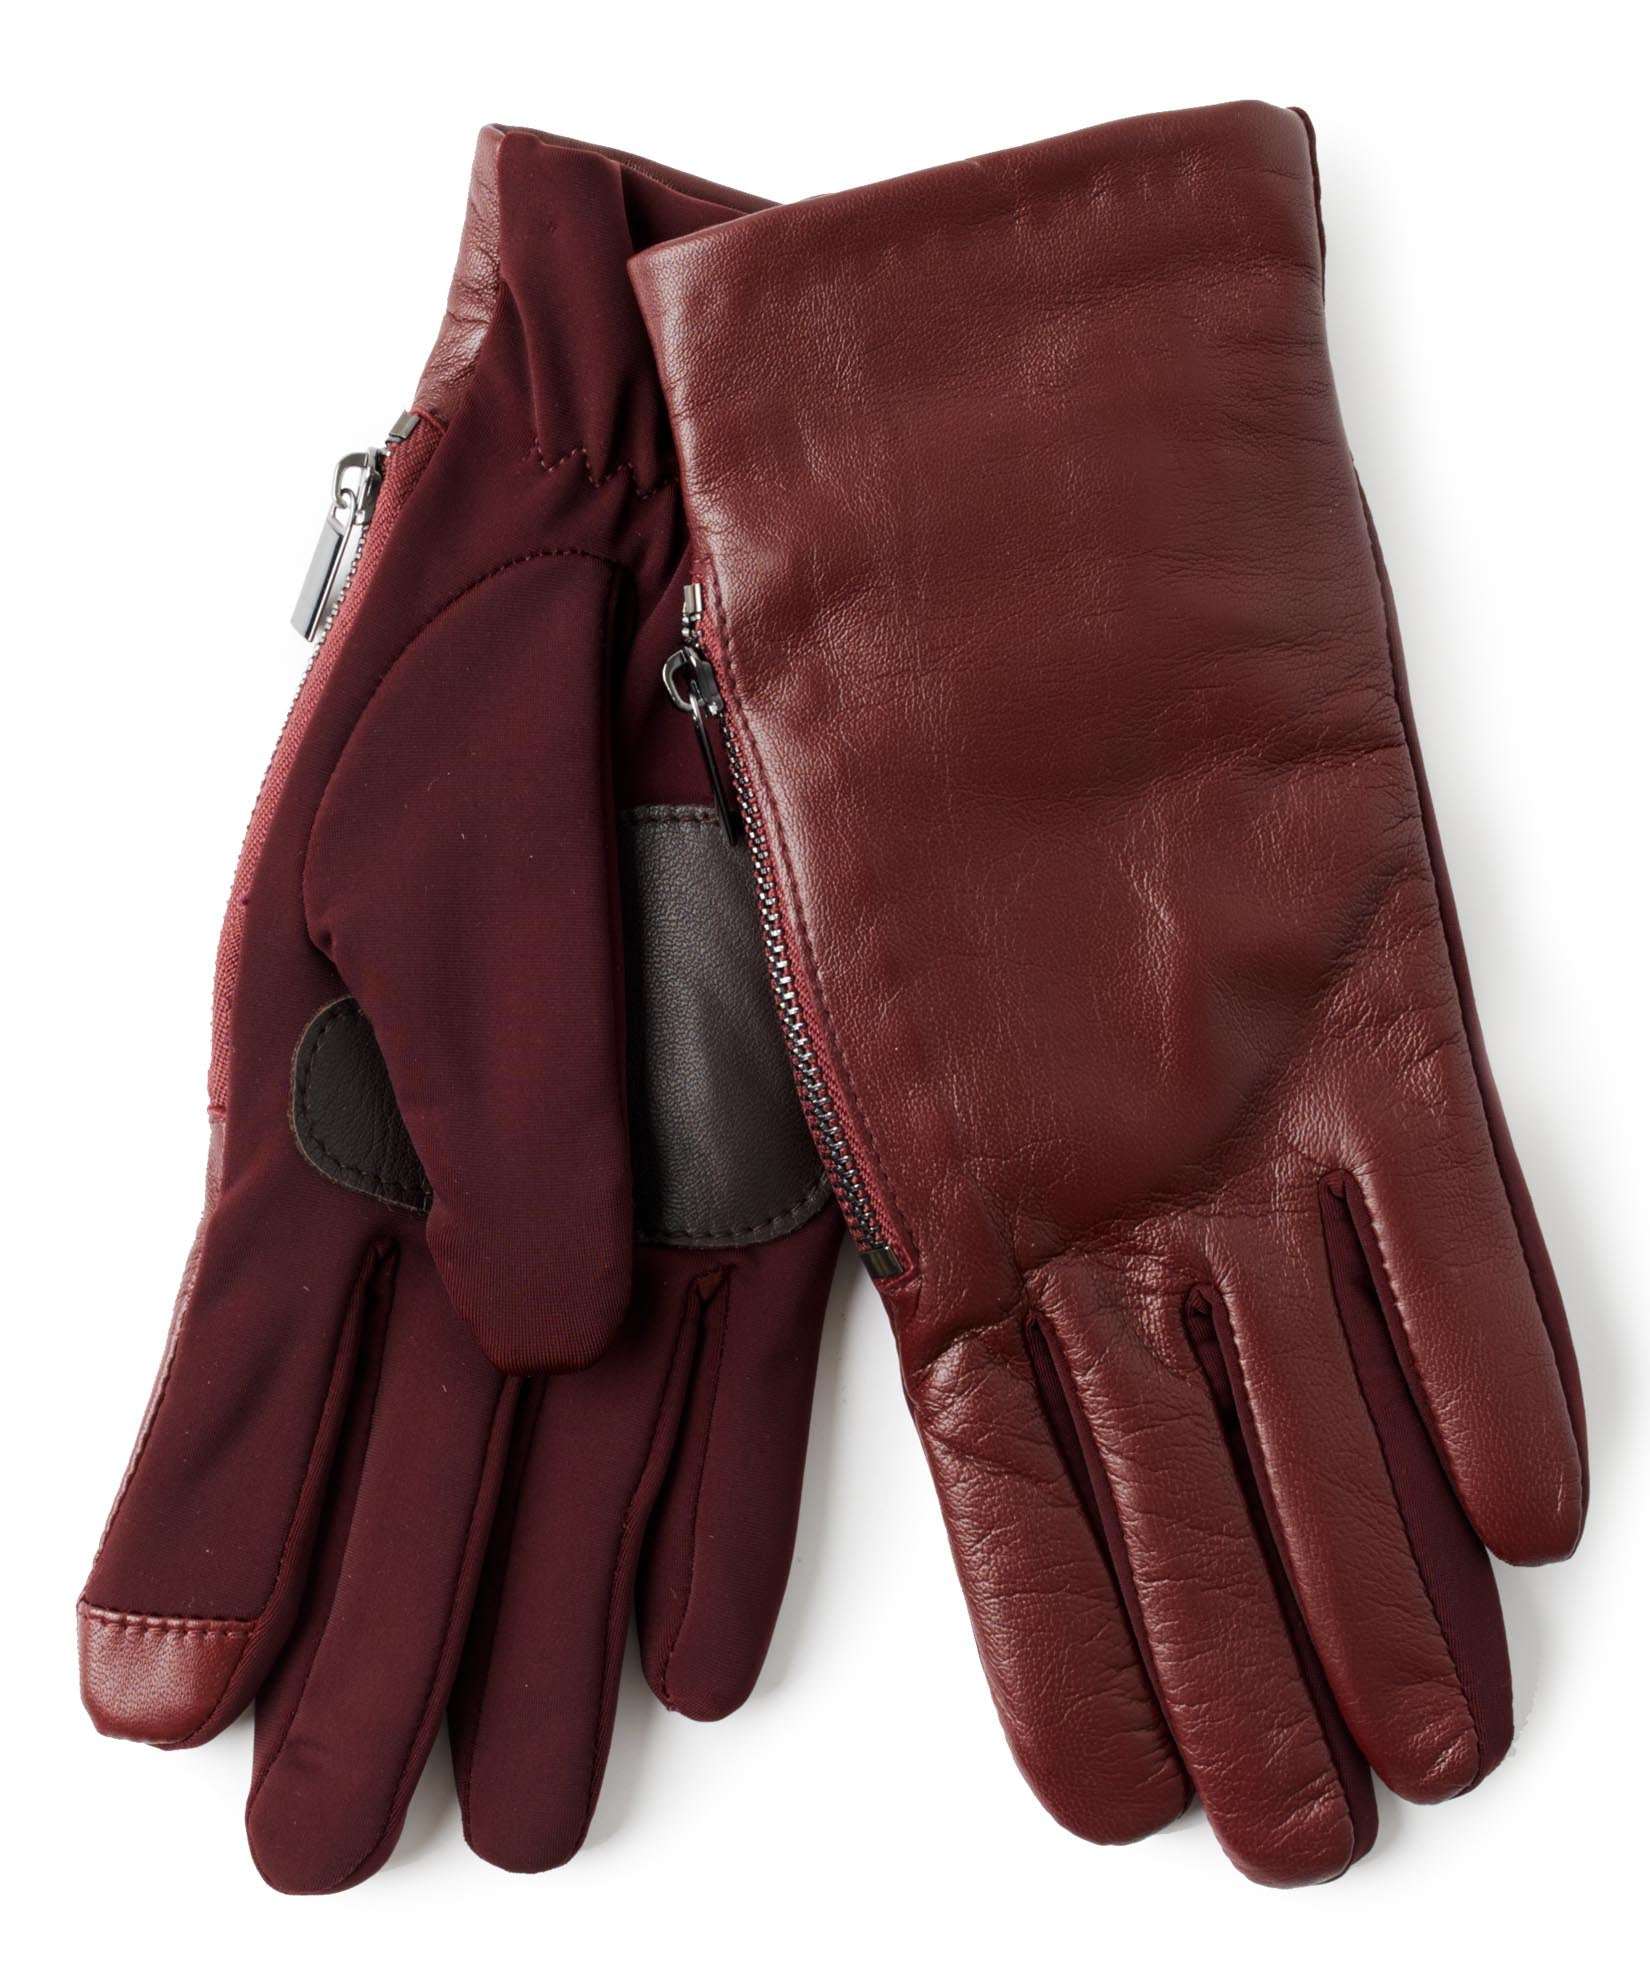 Port - Short On The Go Glove